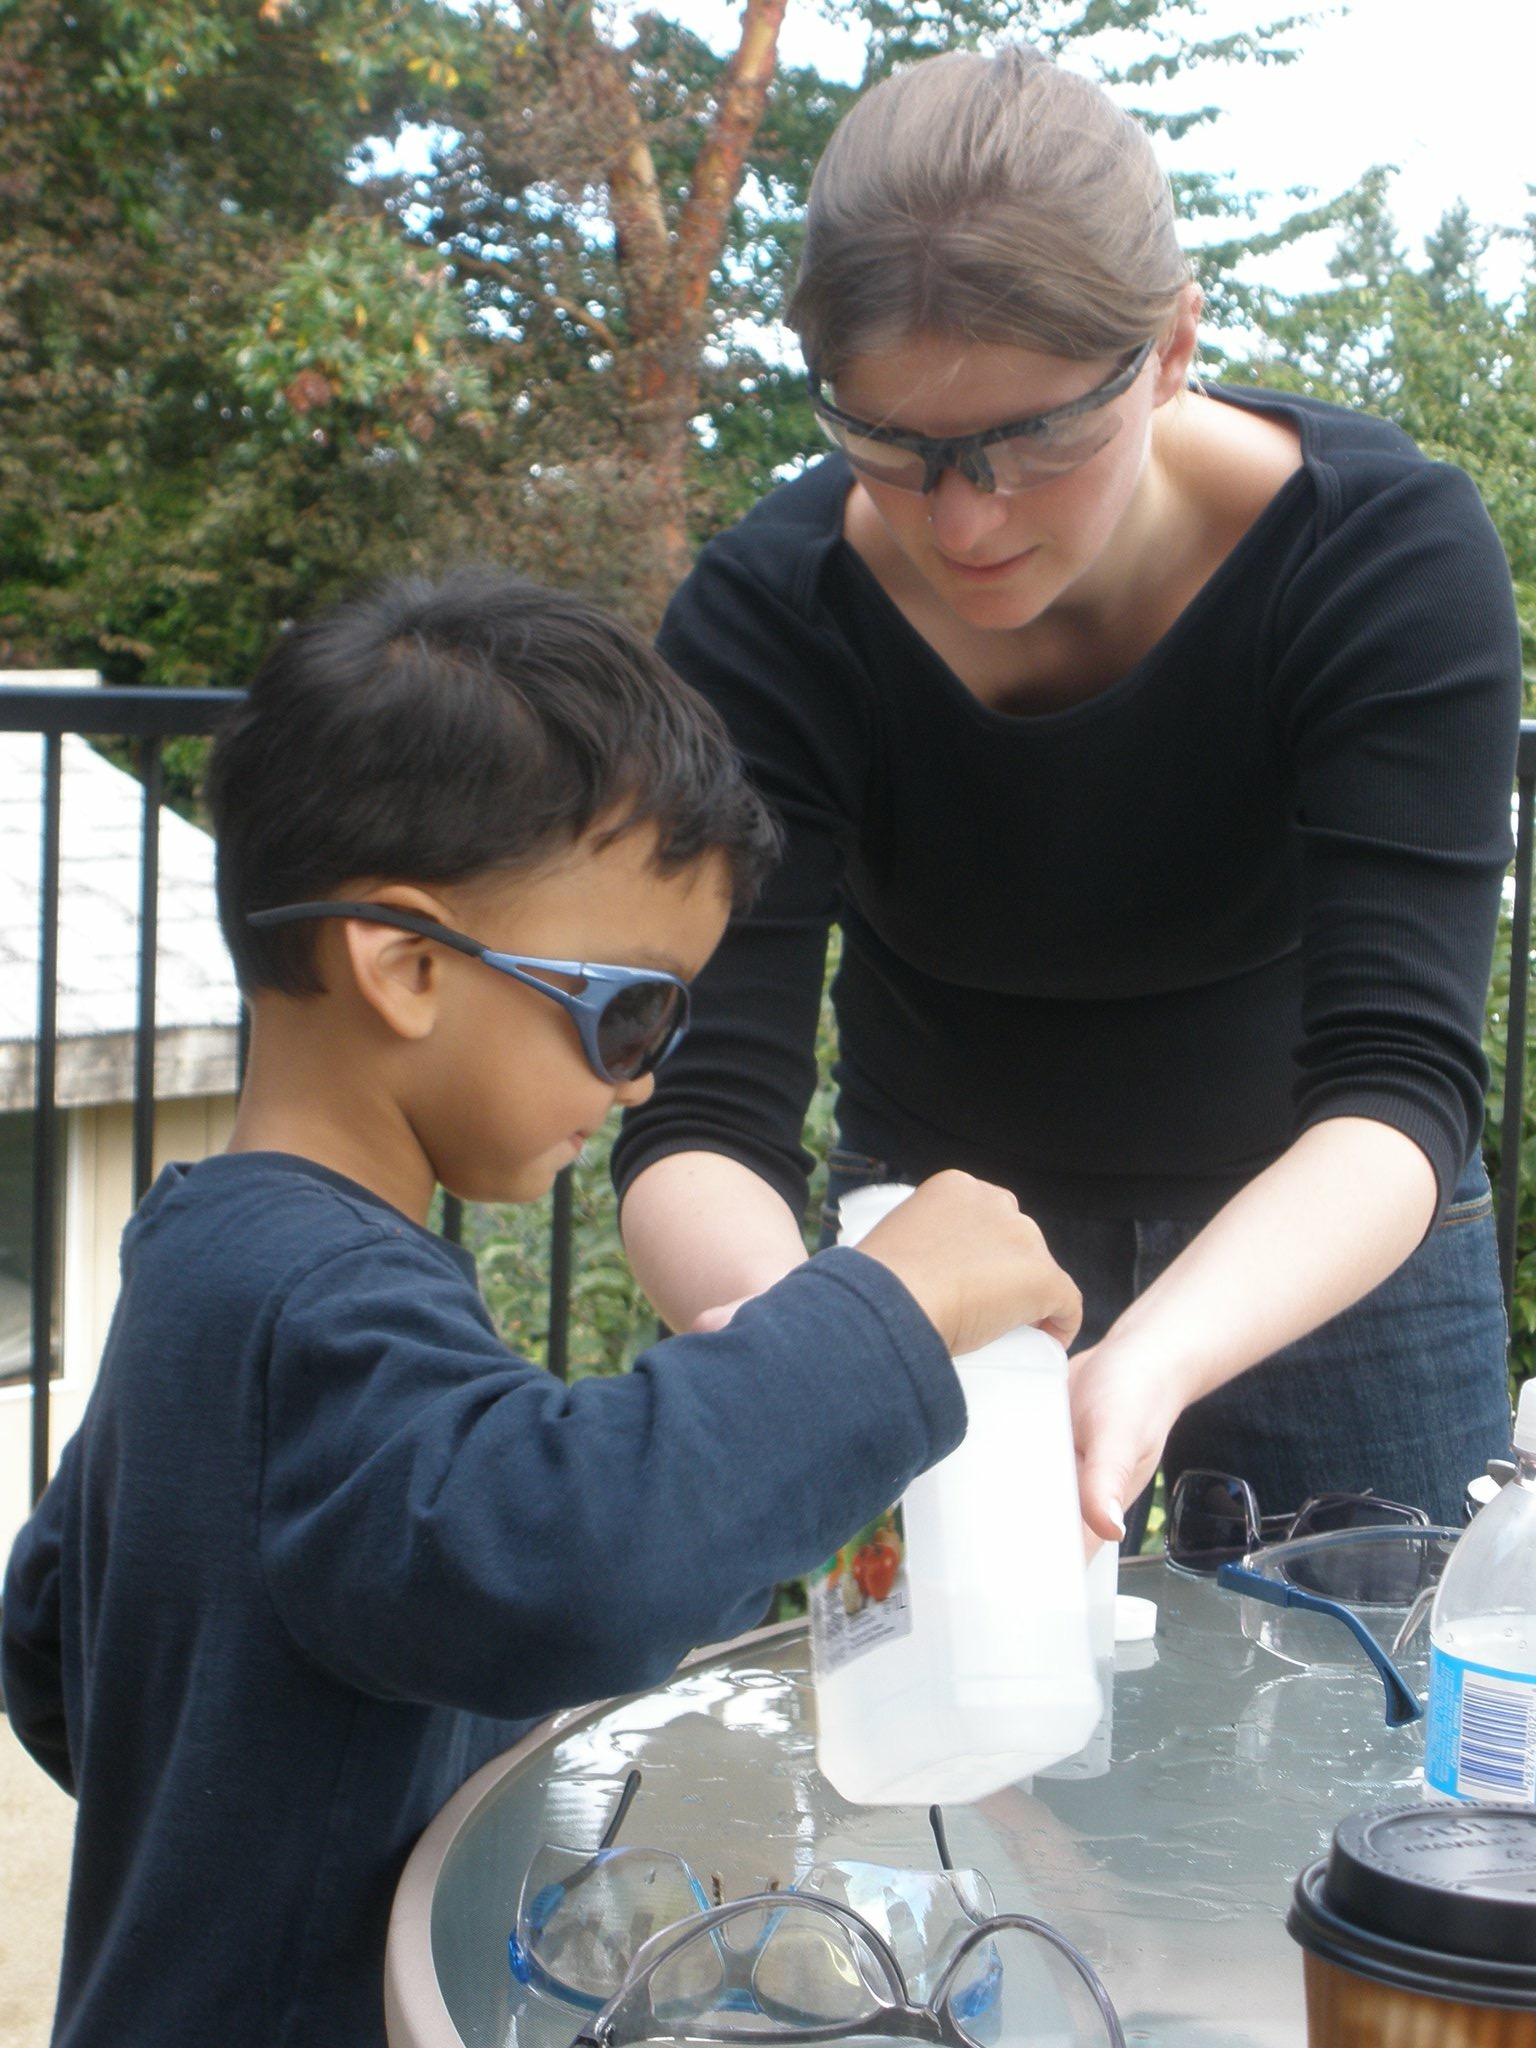 Cath Shepherd helping young boy with science project.